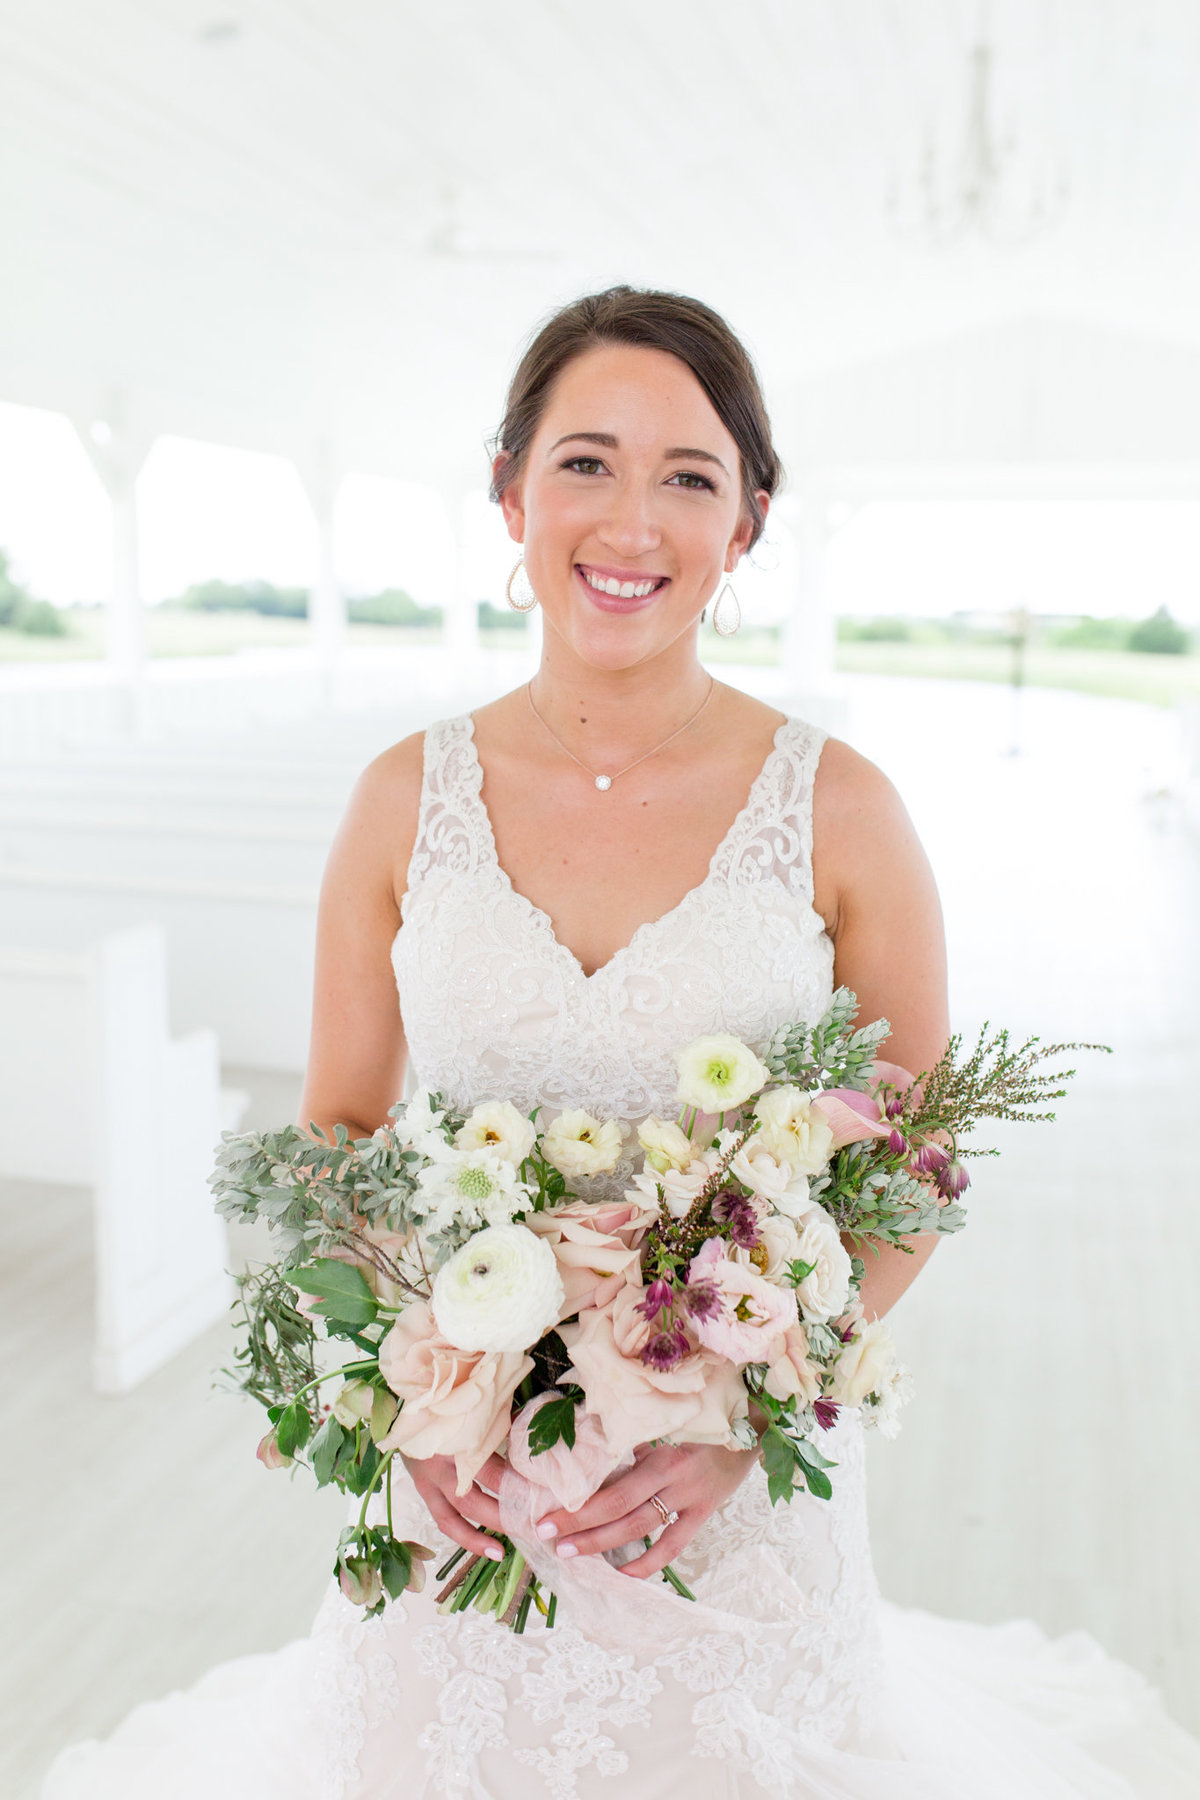 Grand Ivory Wedding| Dallas, Texas | DFW Wedding Photographer | Sami Kathryn Photography-49